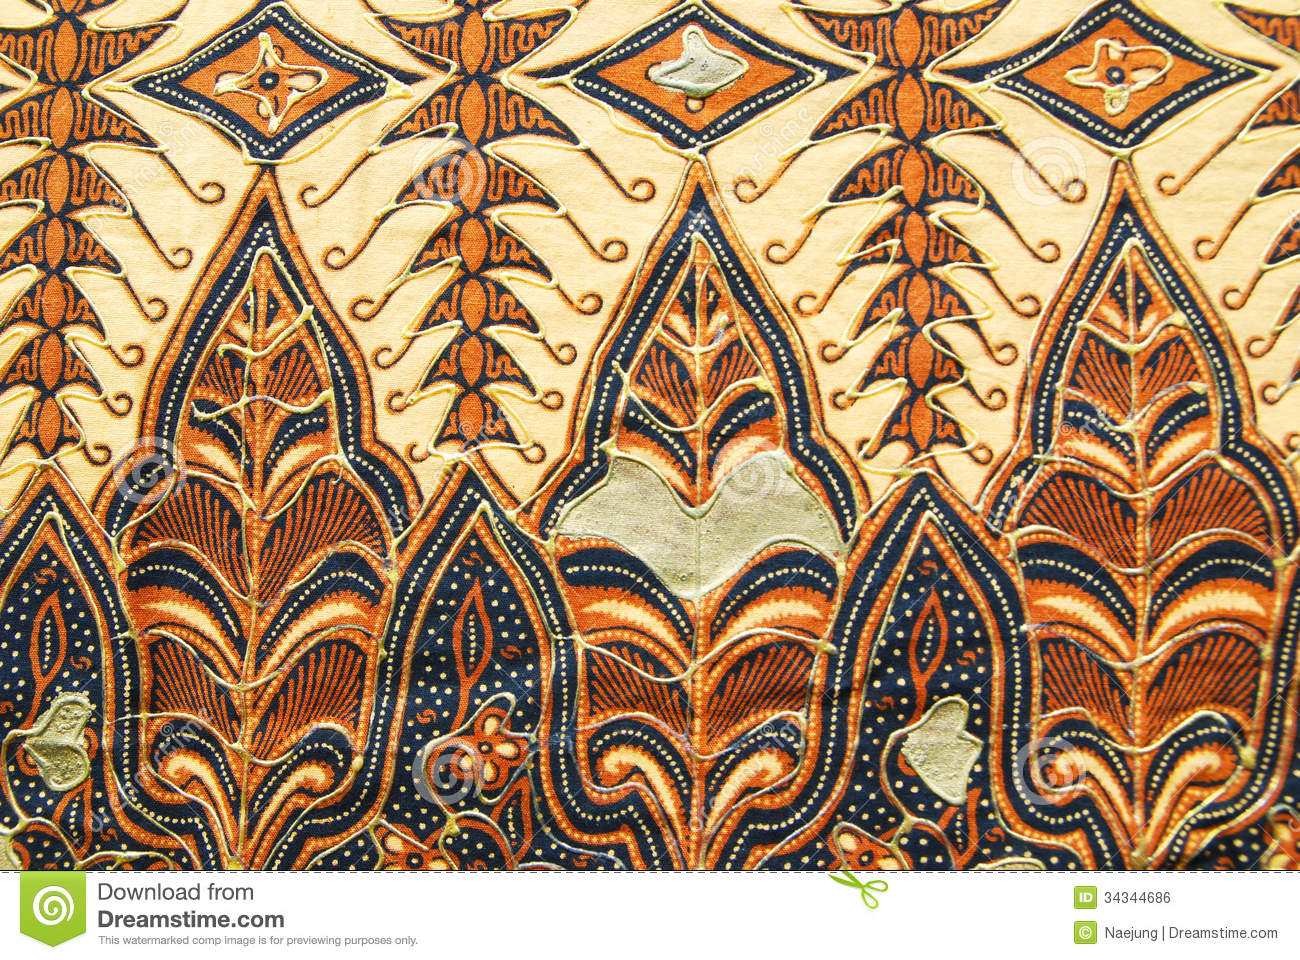 Indonesian Sarong Texture Royalty Free Stock Image  Image: 34344686